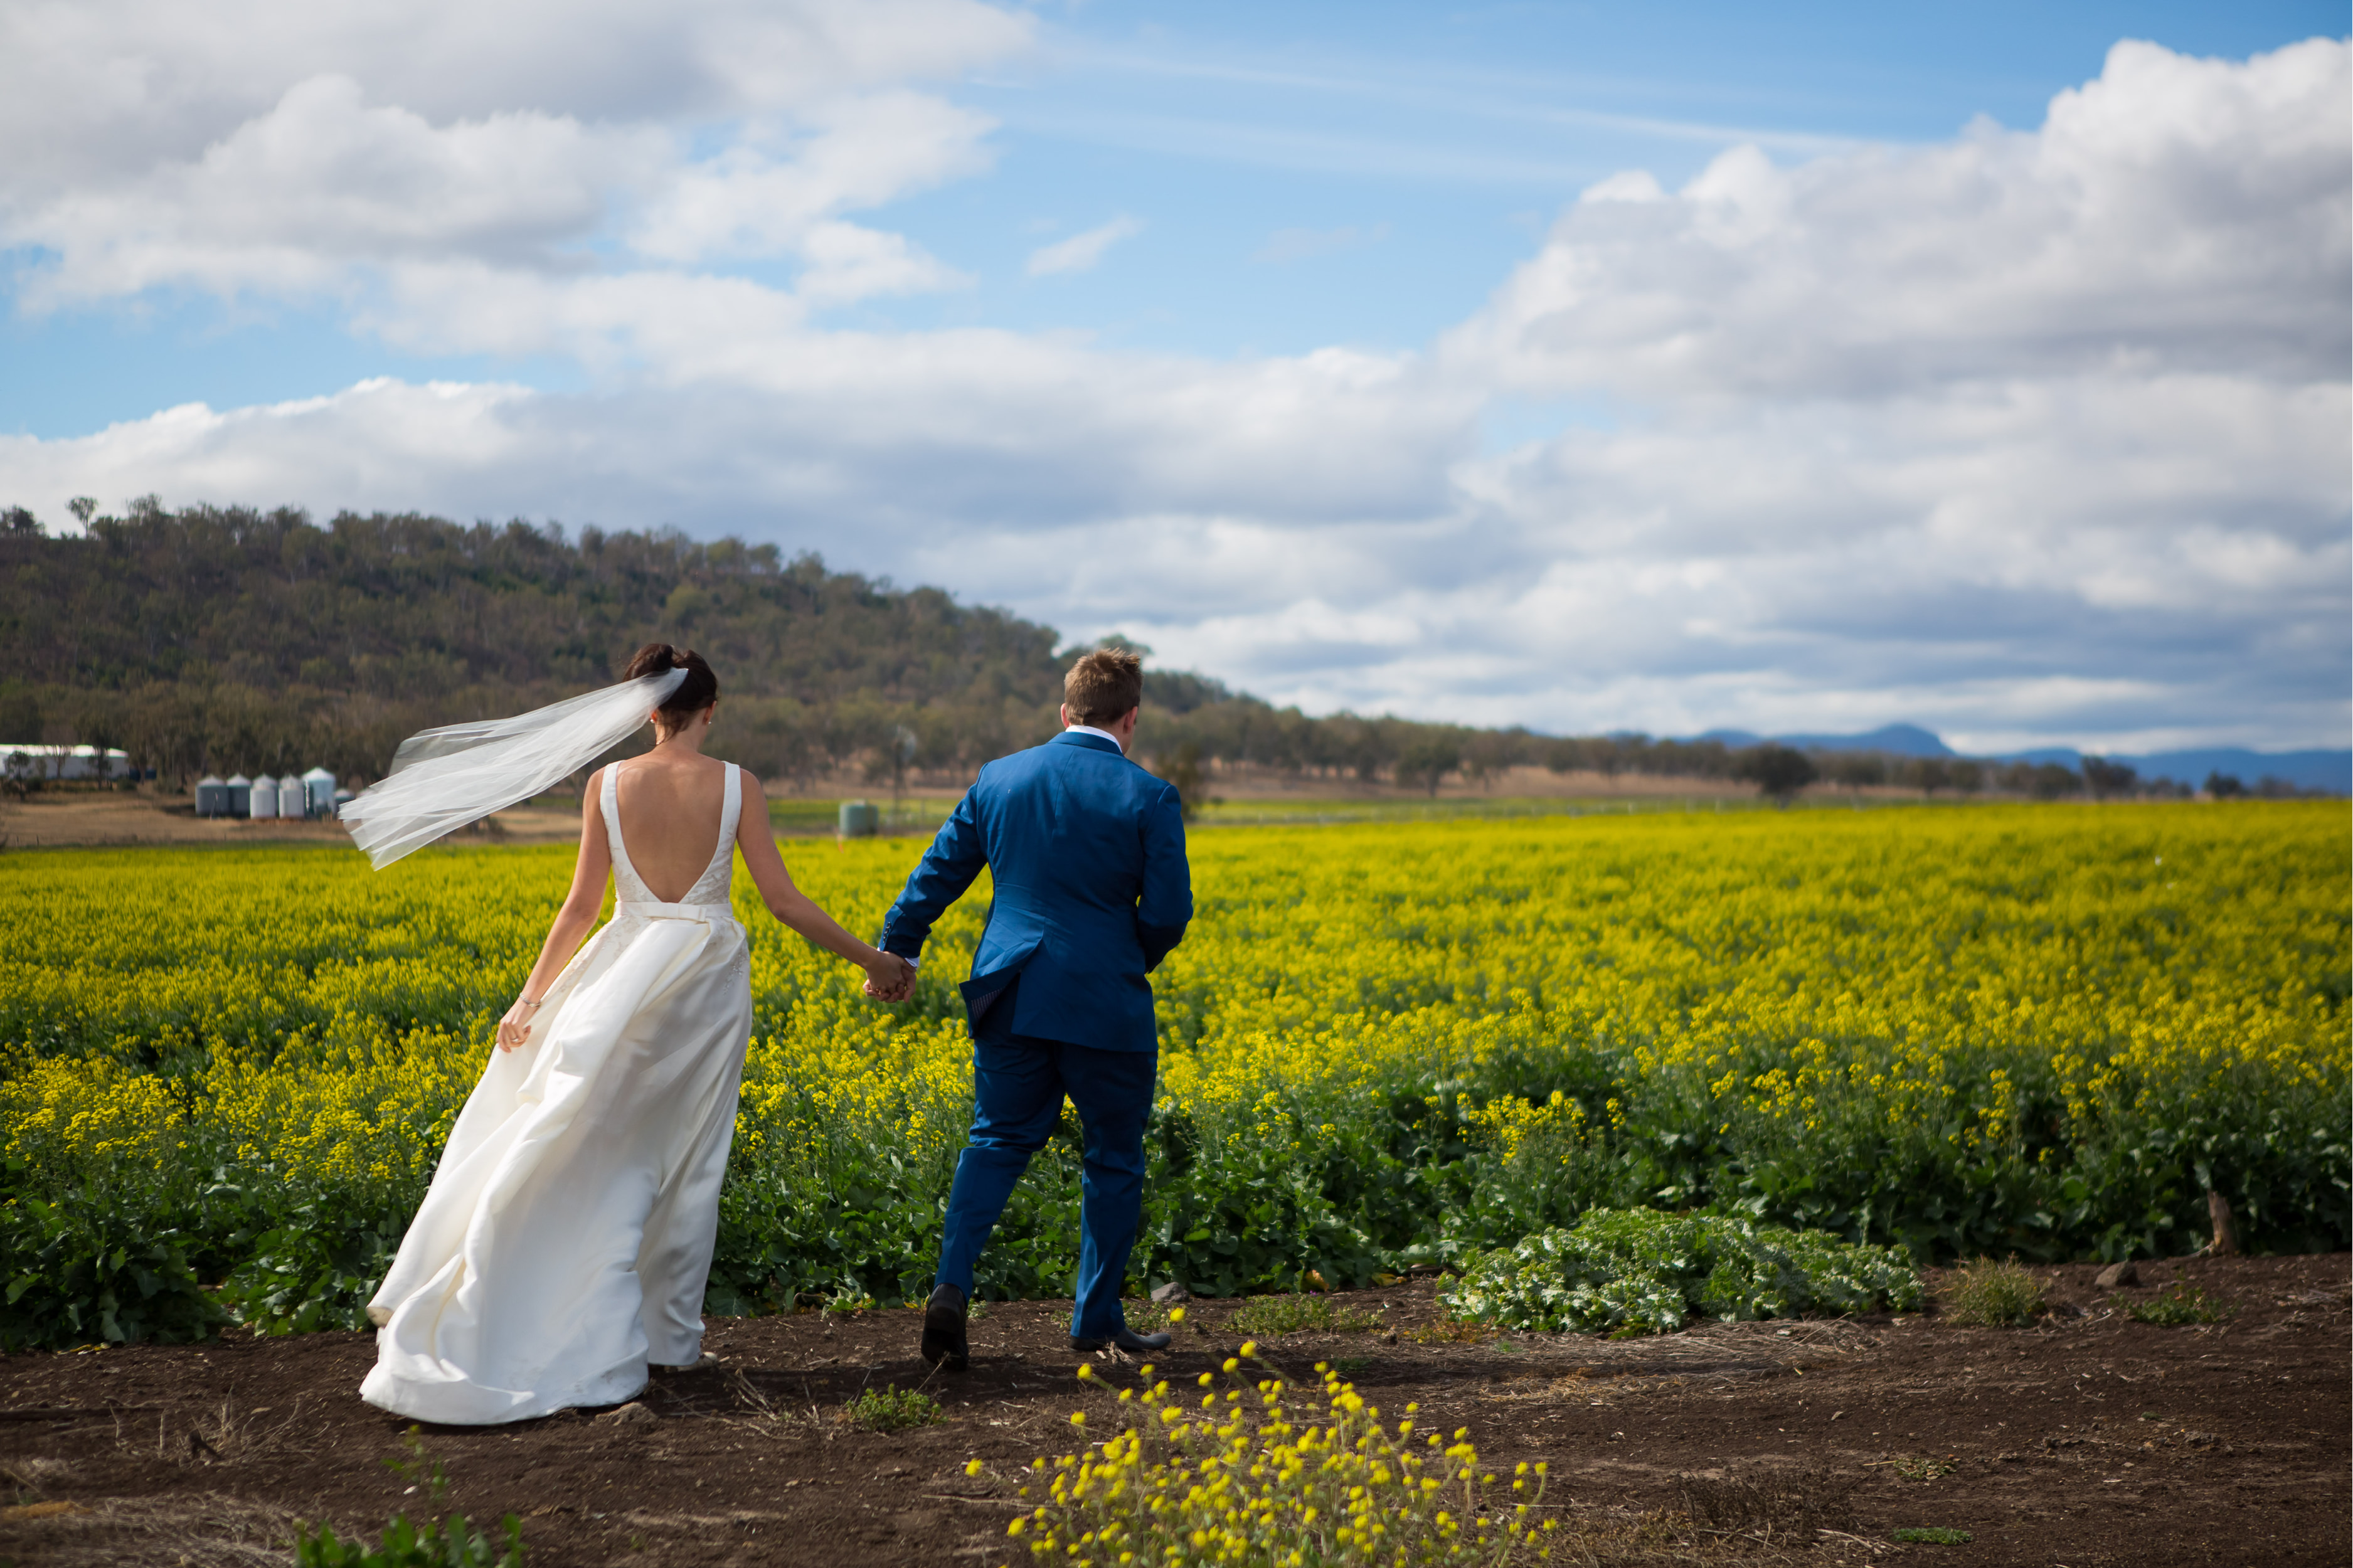 Emma_cleary_photography Destination wedding28